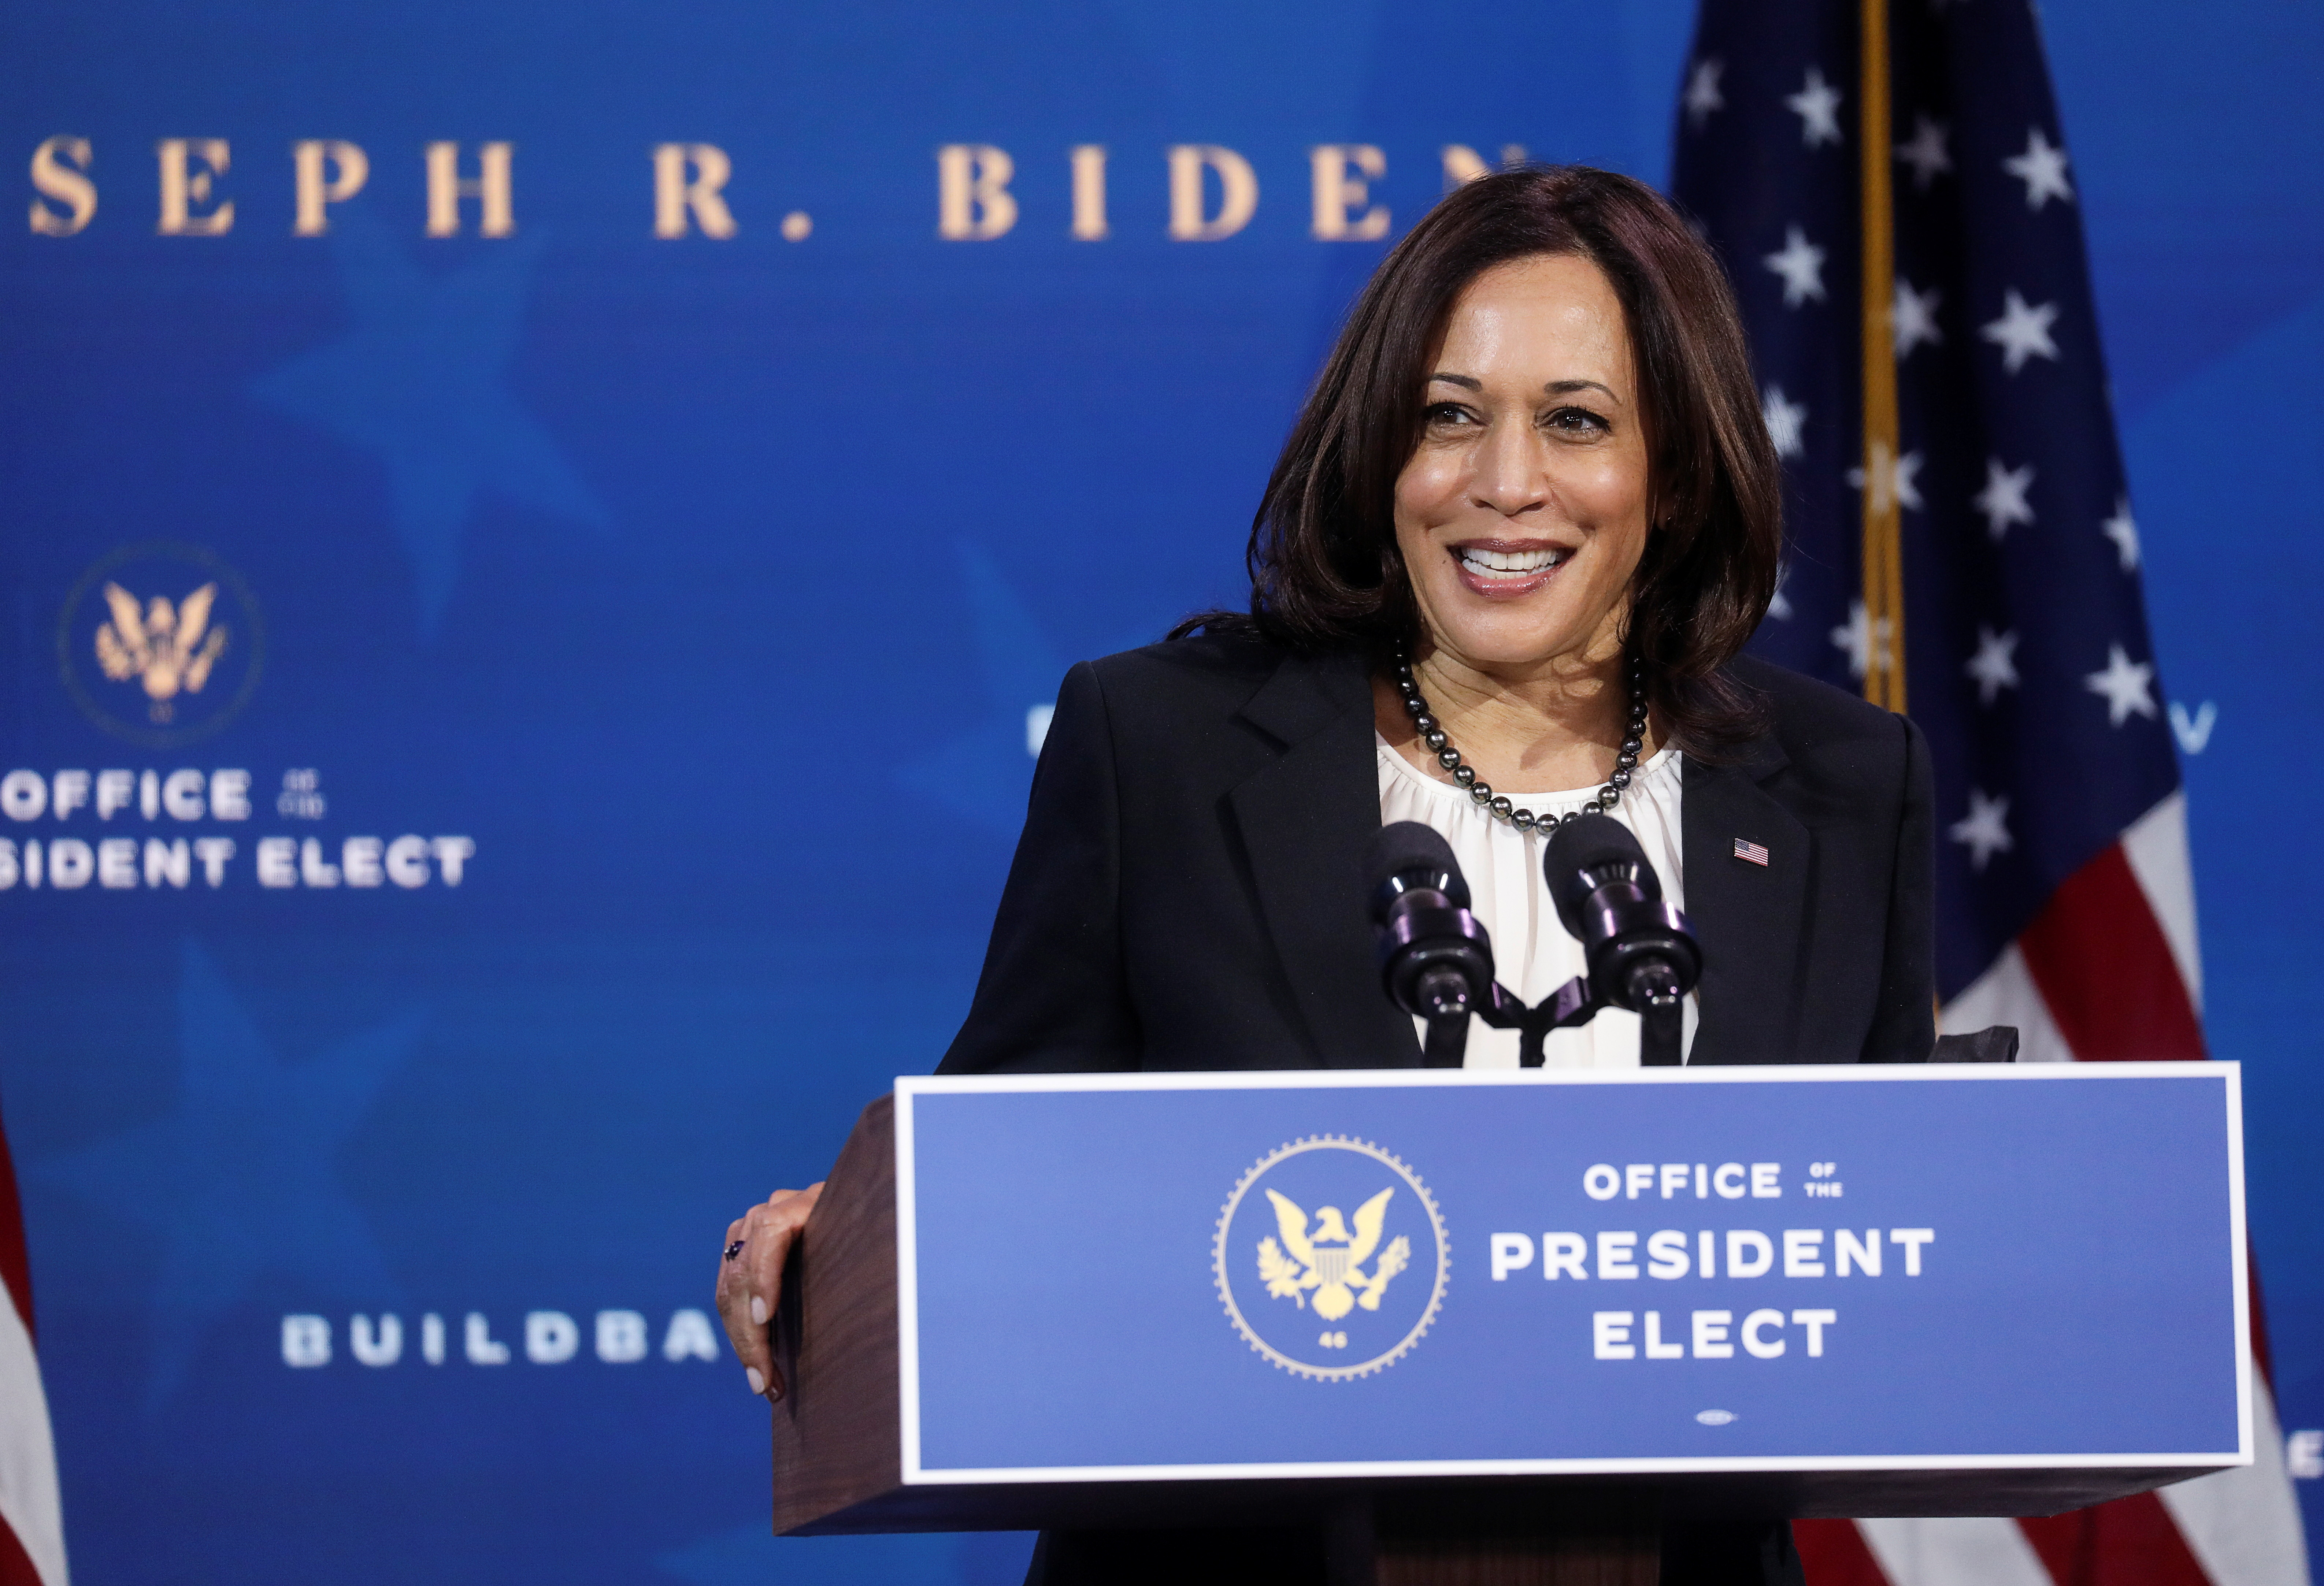 U.S. Vice President-elect Kamala Harris speaks as she and U.S. President-elect Joe Biden announce nominees and appointees to serve on their economic policy team at his transition headquarters in Wilmington, Delaware, U.S., December 1, 2020. REUTERS/Leah Millis - RC2IEK9VYZ3Q